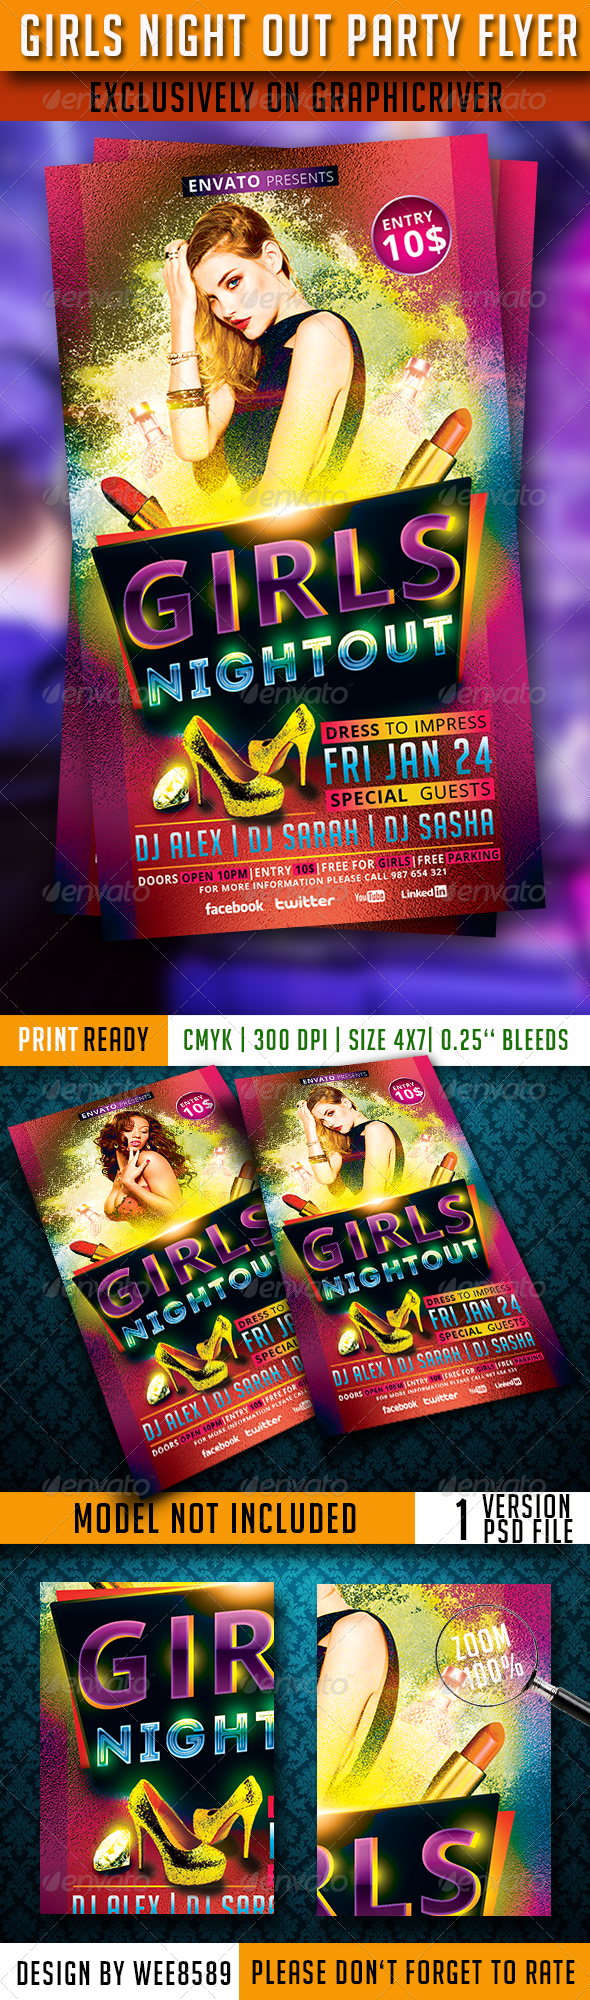 Girls Night Out Party Flyer Template - Clubs & Parties Events